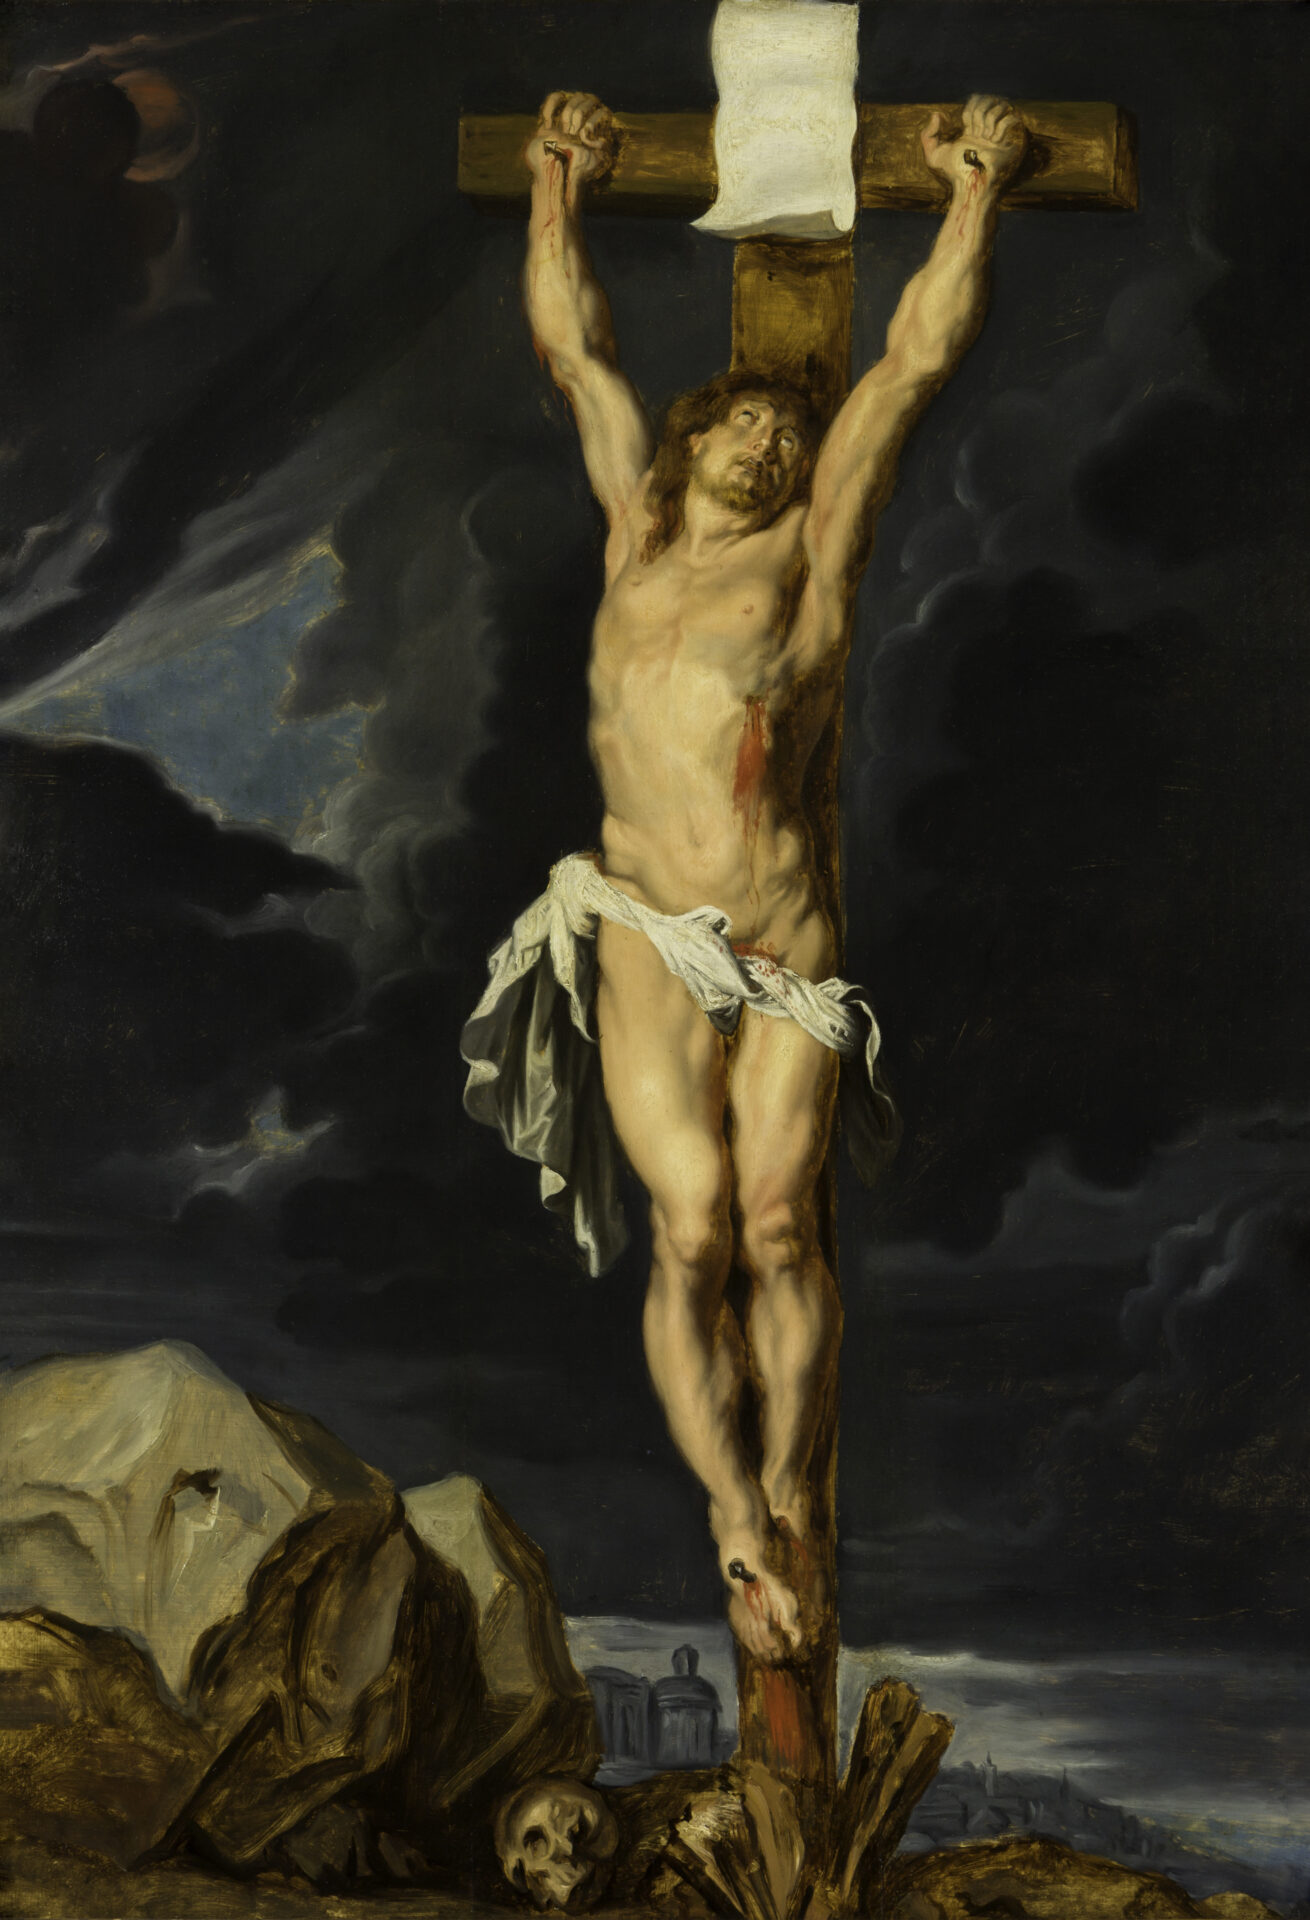 Rubens (1577-1649), Christ on the Cross, ca. 1610 Museum and Gallery at Bob Jones University, Greenville, SC.